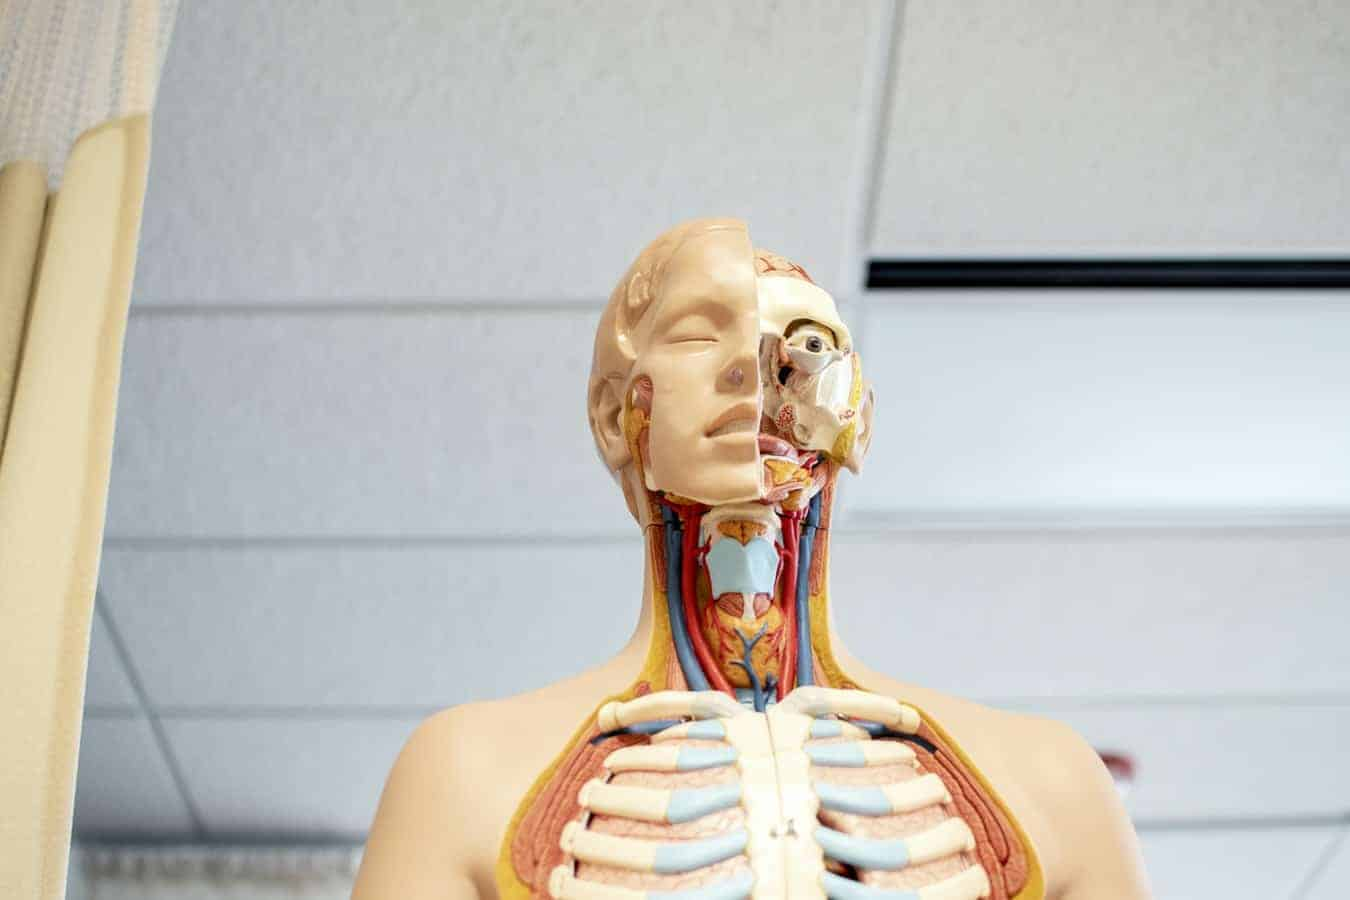 A science model showing the human anatomy